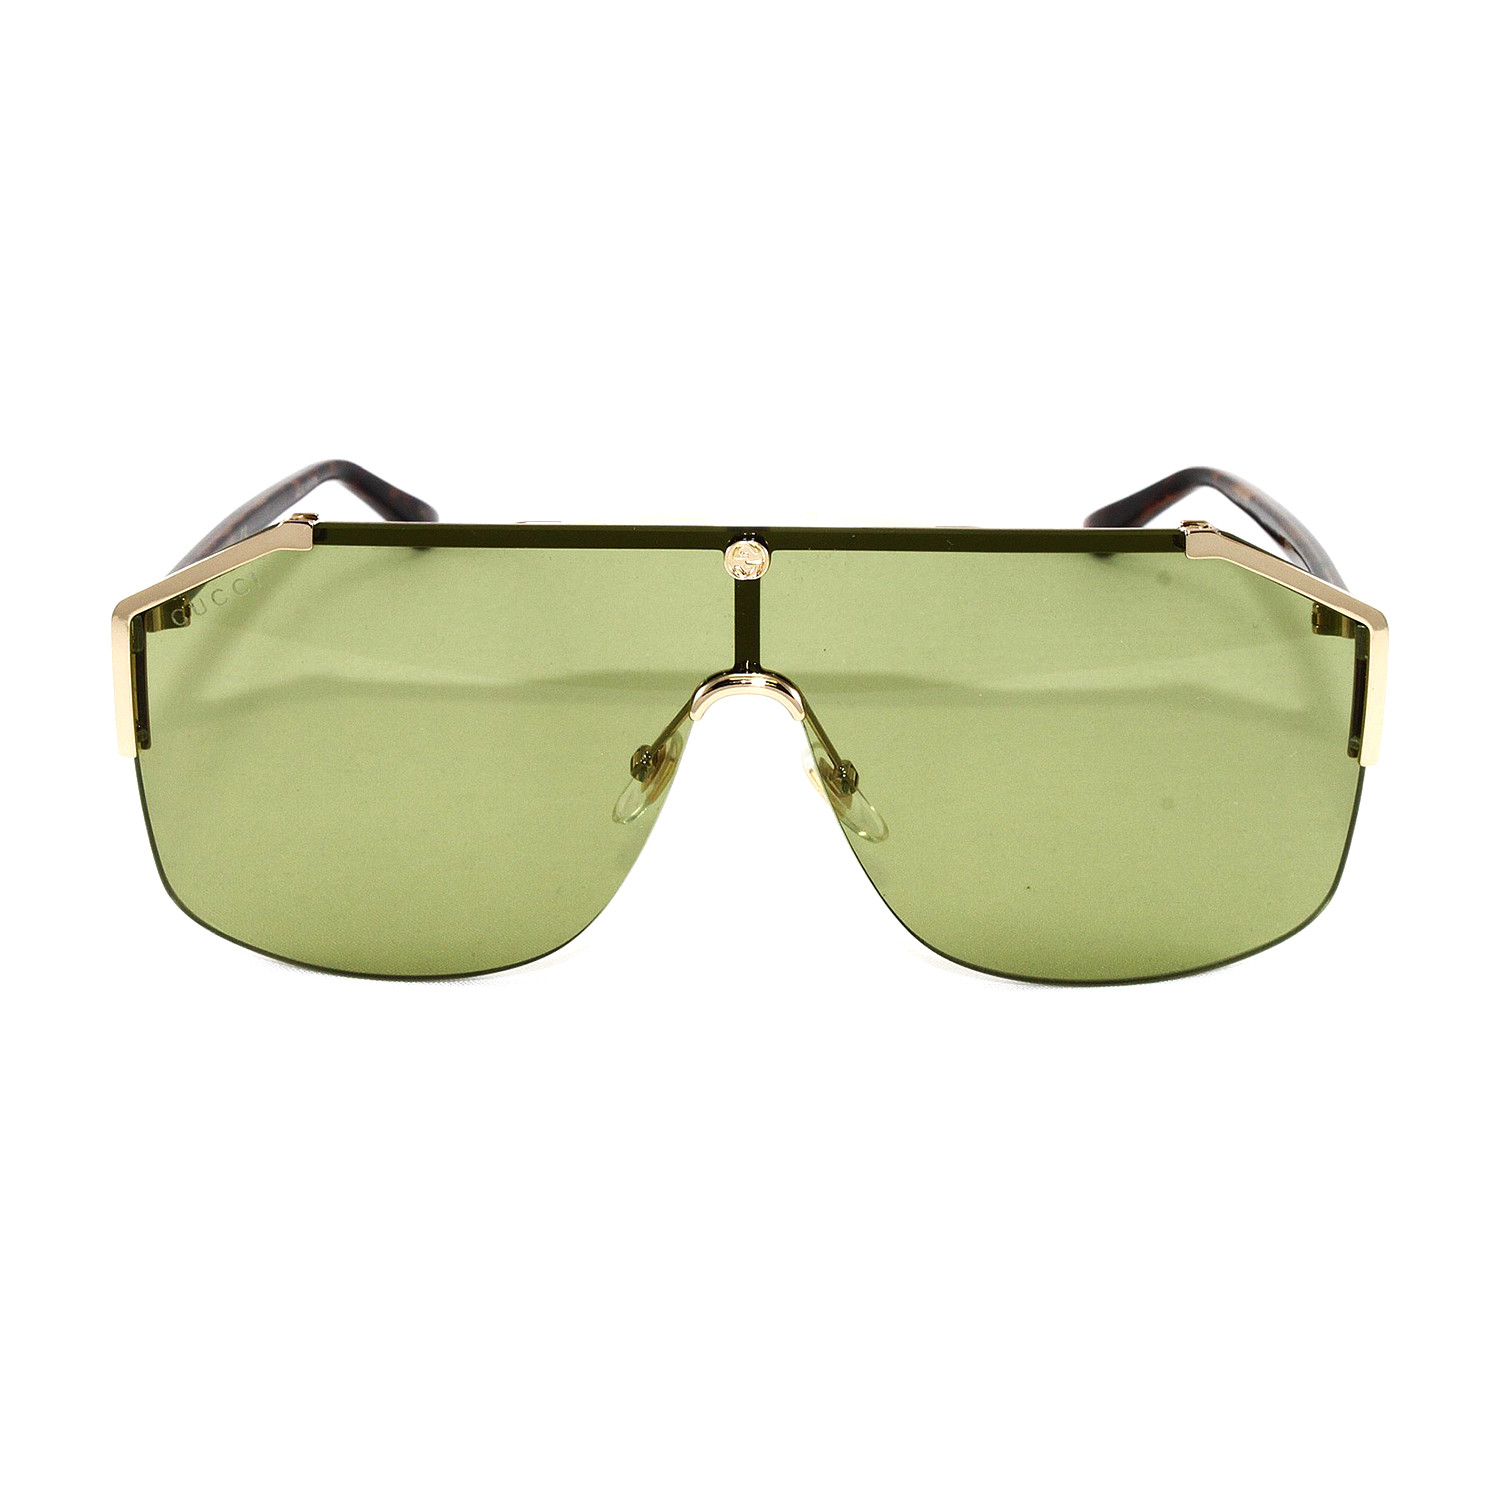 bb844909 Unisex GG0291S Sunglasses // Gold Avana + Green - Gucci - Touch of ...